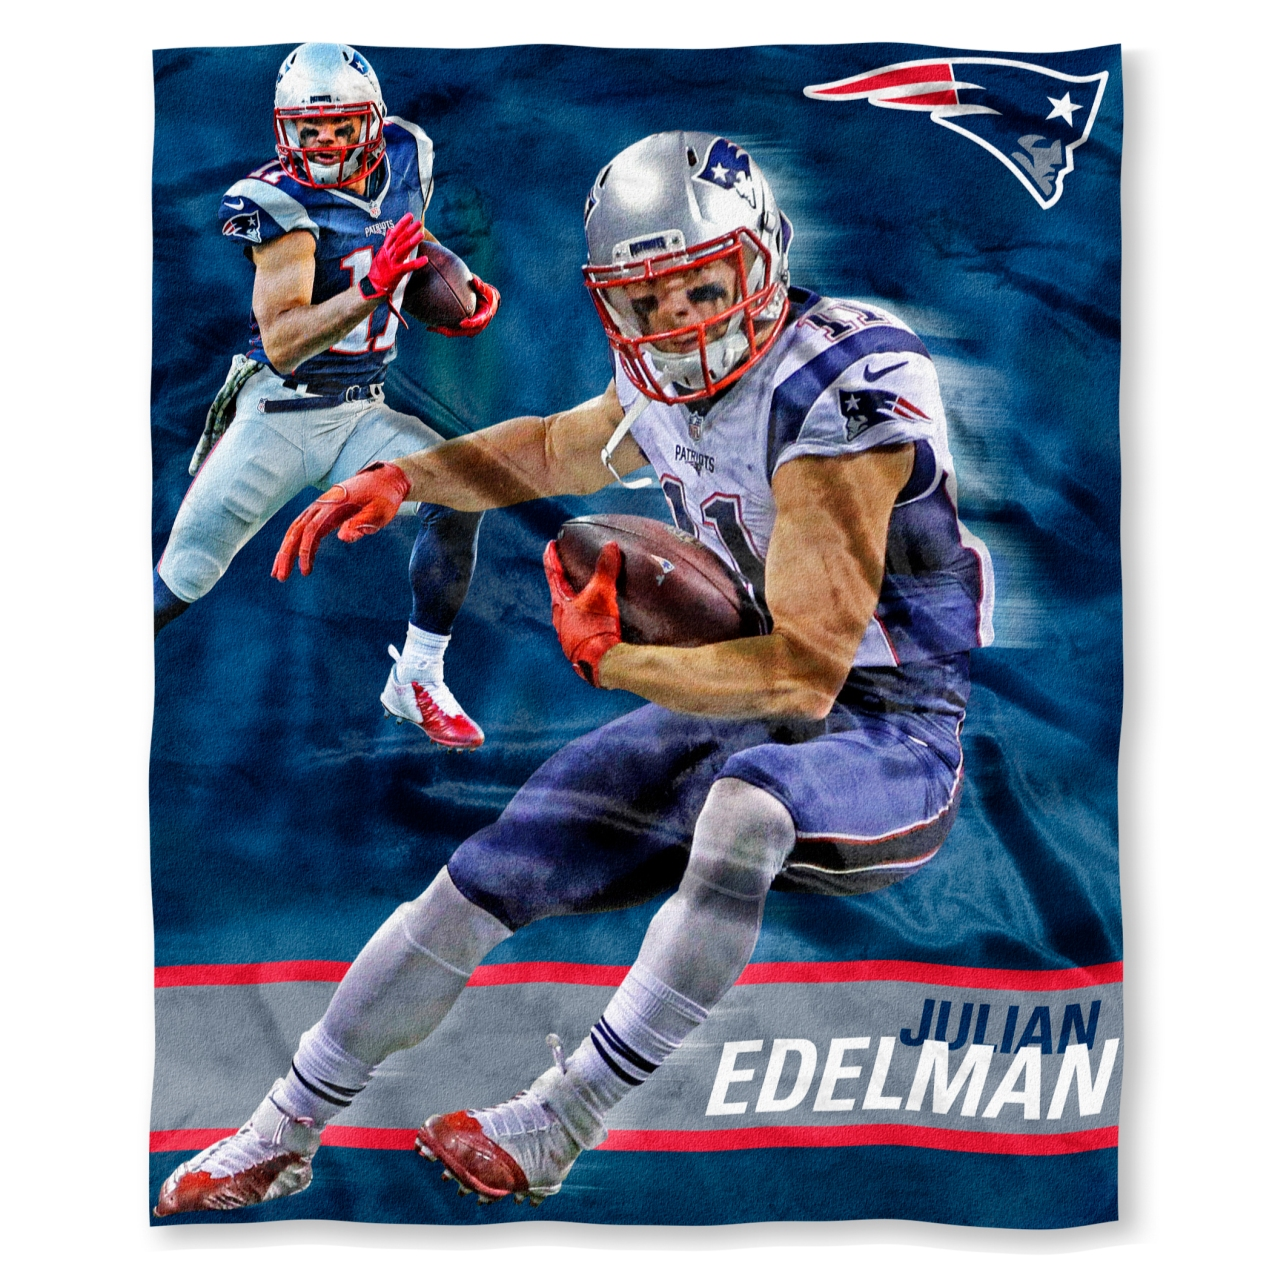 im_575_nflpa_julianedelman